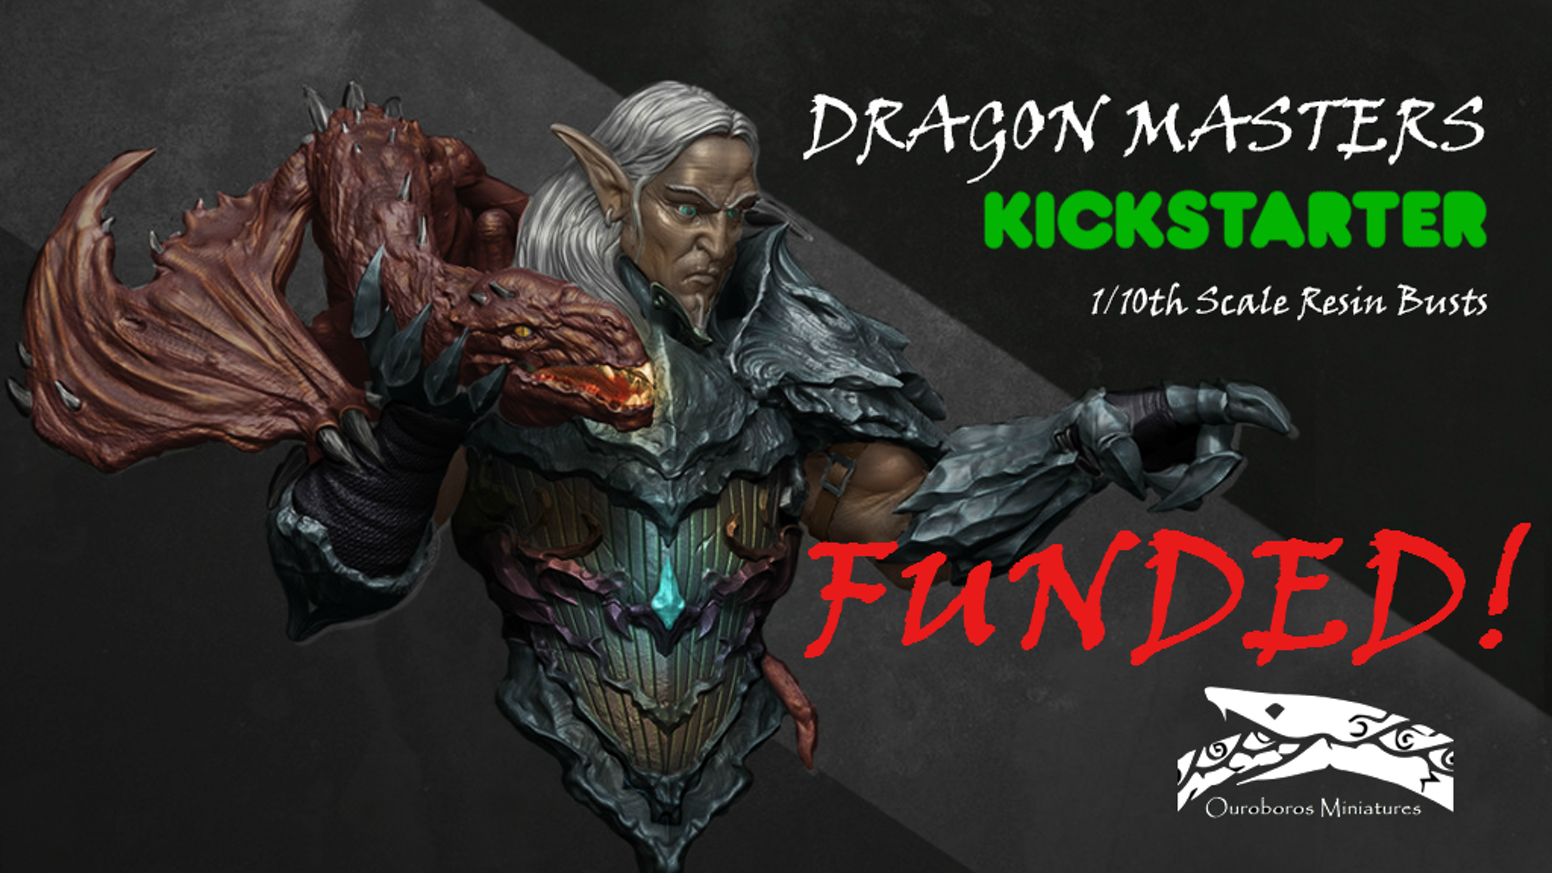 Ouroboros Miniatures presents - Dragon Masters. Fantasy busts for painters and collectors cast in high quality resin.